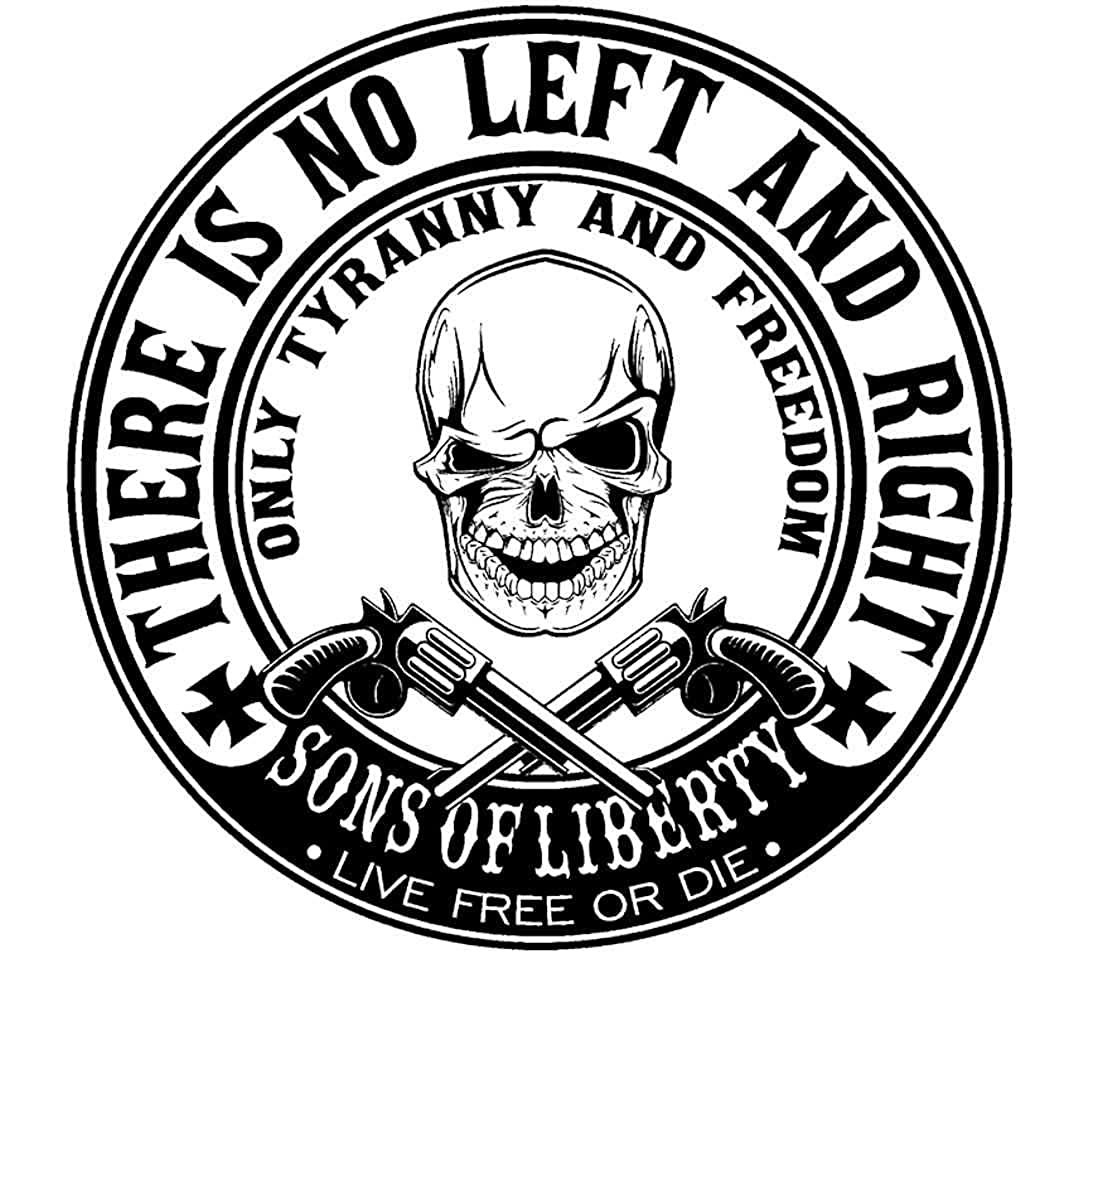 only Tyranny and freedo Long Sleev. Sons Of Liberty There is no Left or Right